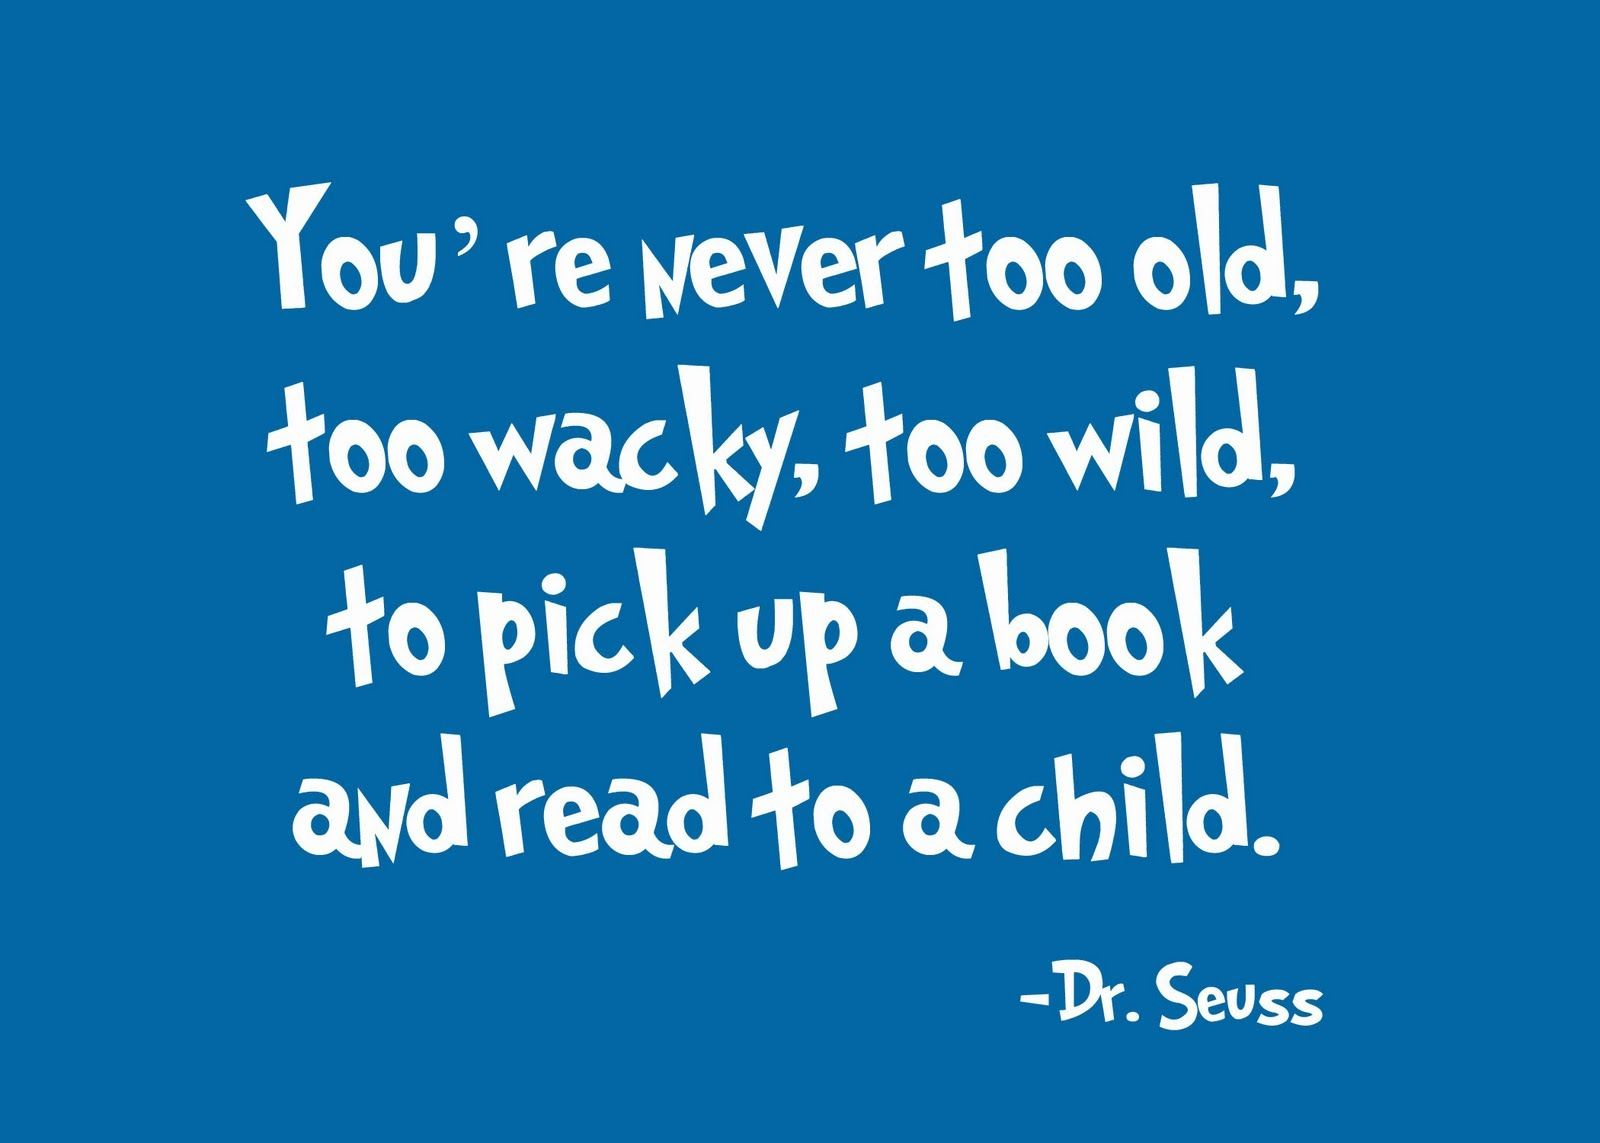 I Love You Quotes Dr Seuss : Pinterest